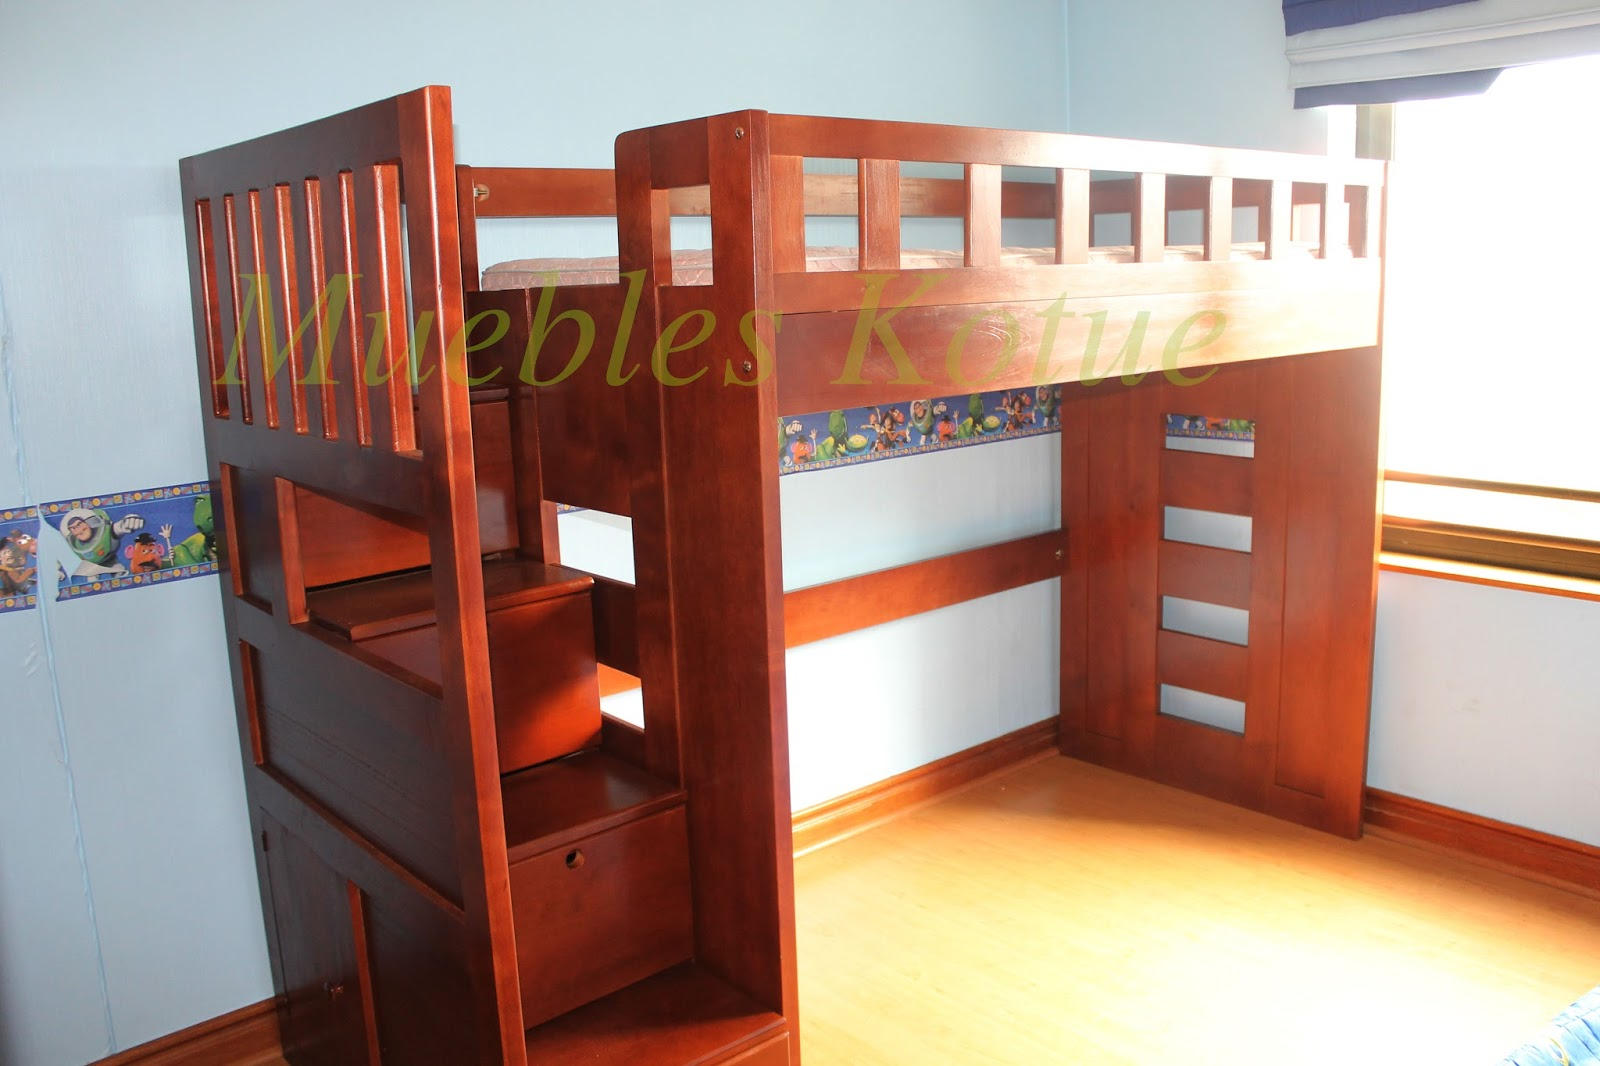 Muebles kotue for Escaleras altas plegables